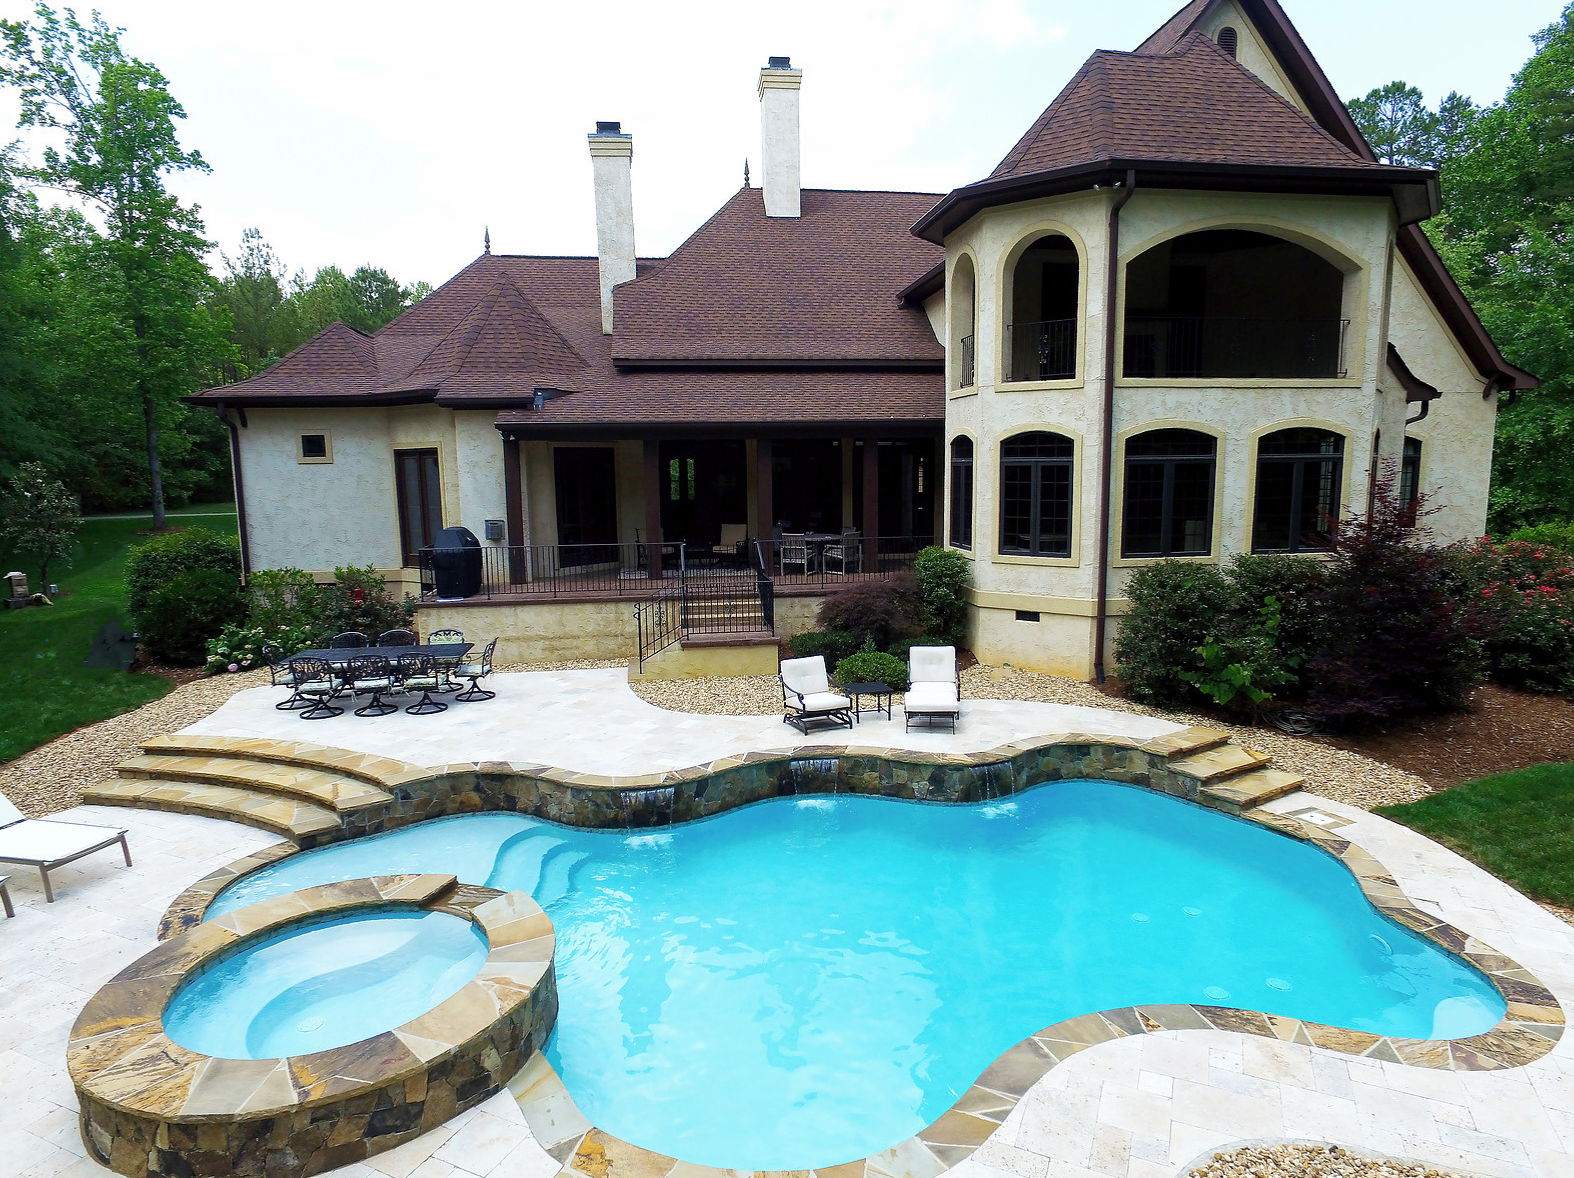 Huntersville nc concrete pool builder cpc pools answers - Concrete swimming pools vs fiberglass ...